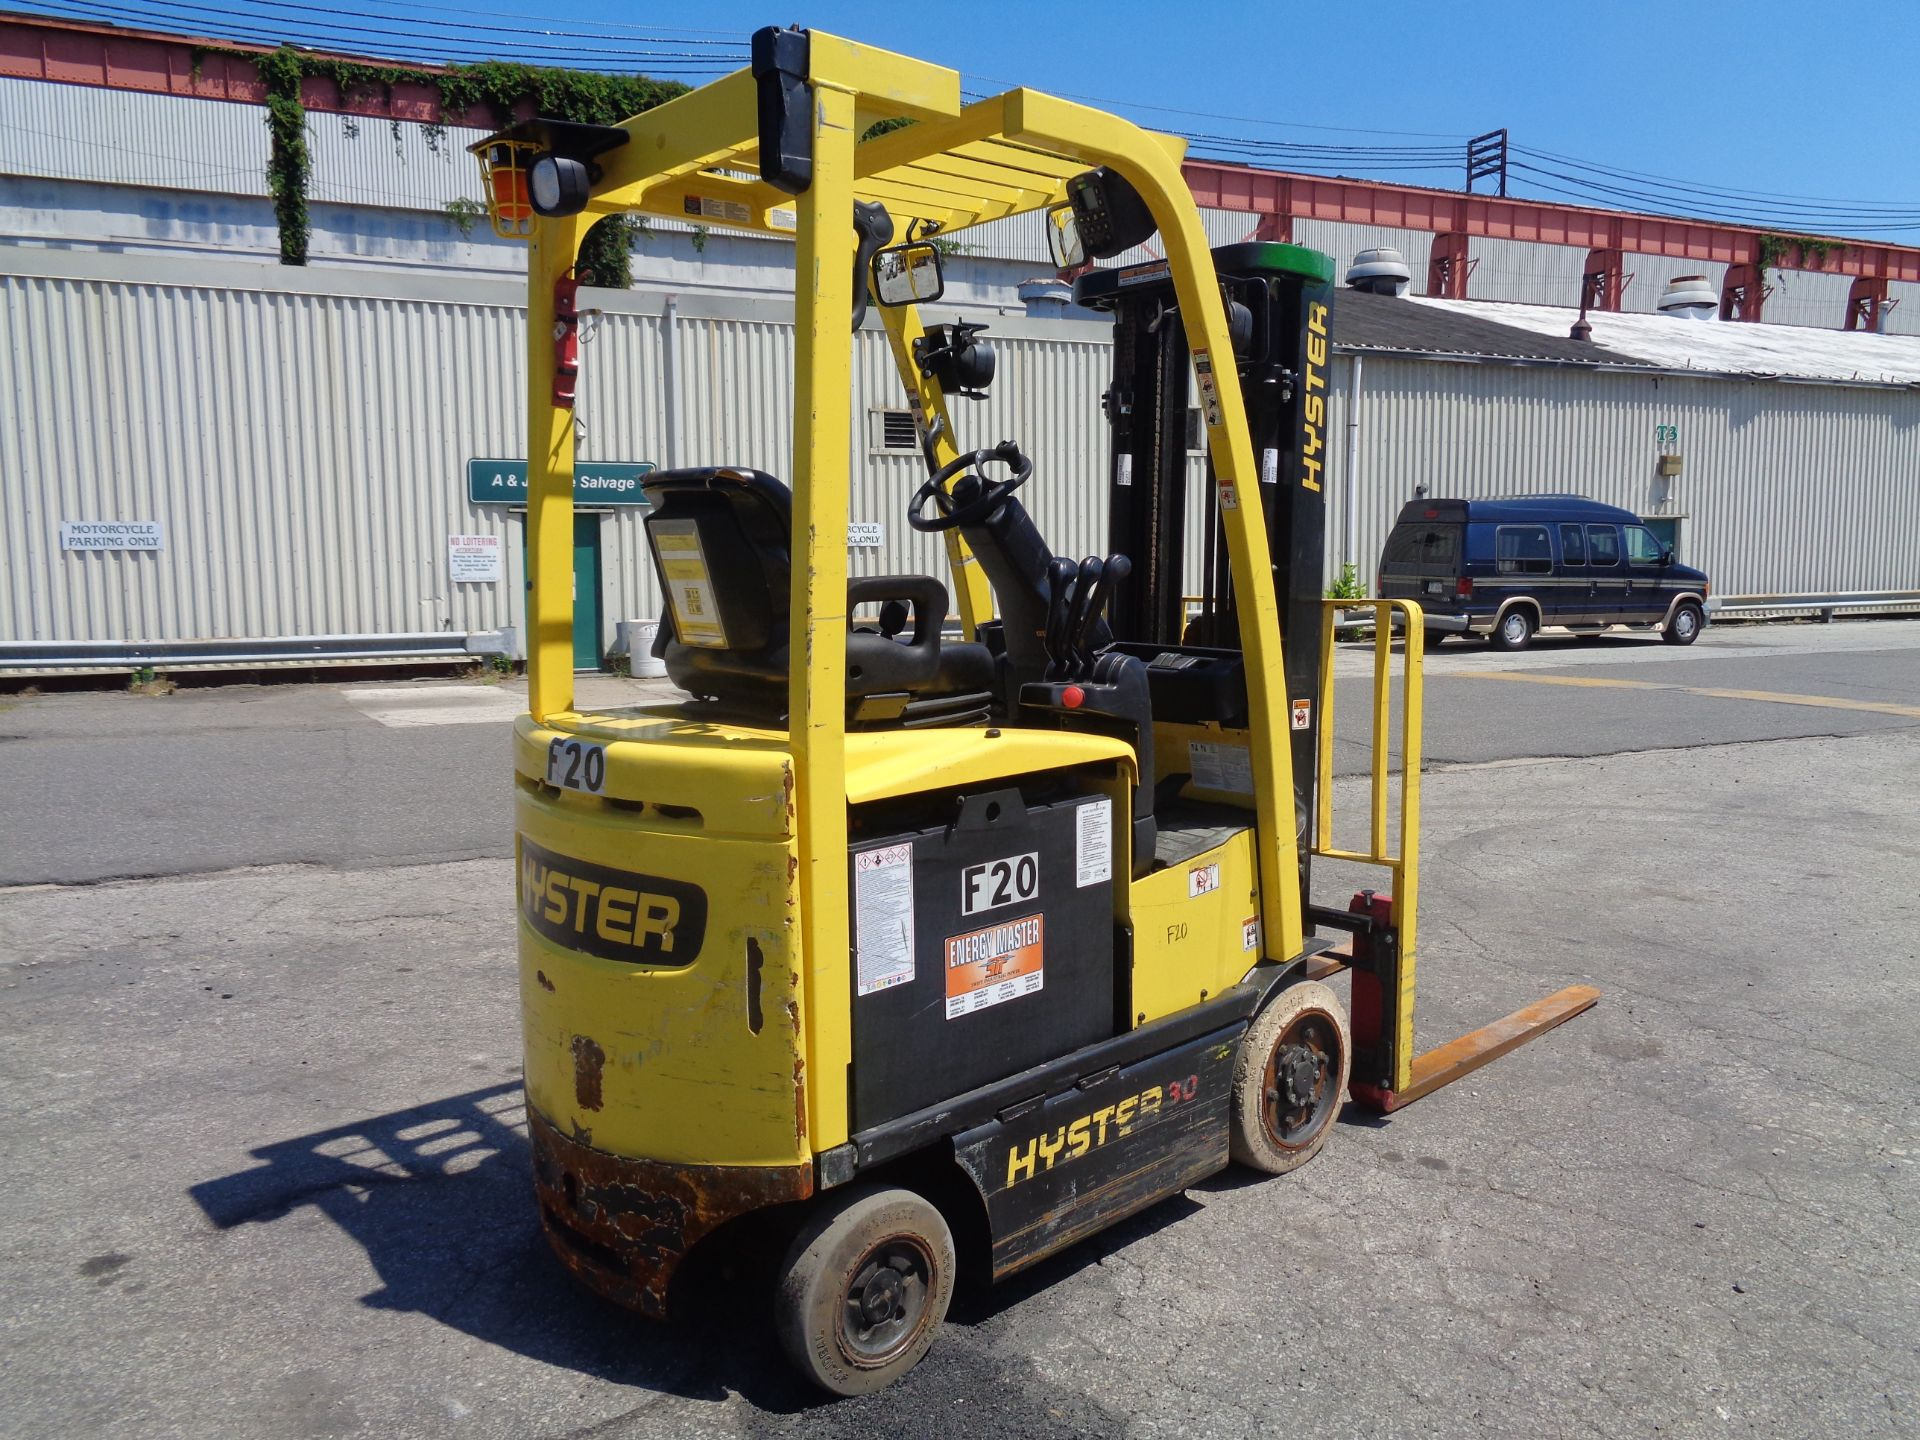 2016 Hyster E30XN 3,000lb Forklift - Image 2 of 18